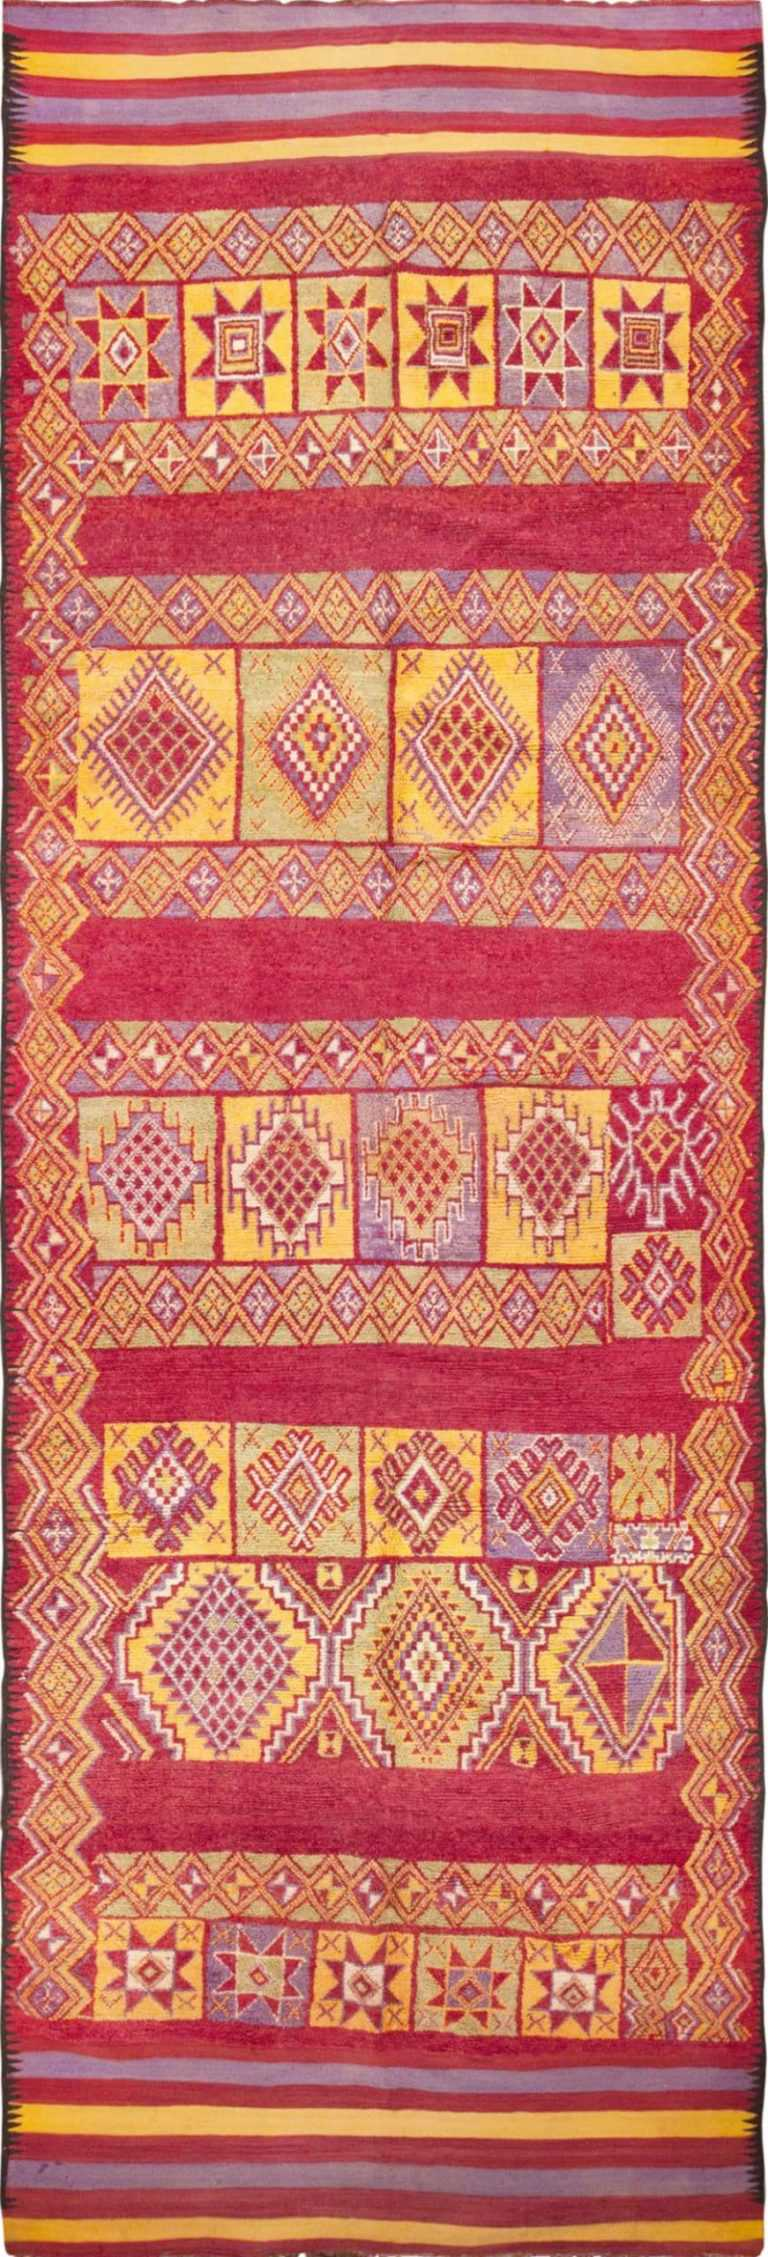 Vintage Moroccan Rug #45751 from Nazmiyal Antique Rugs In NYC